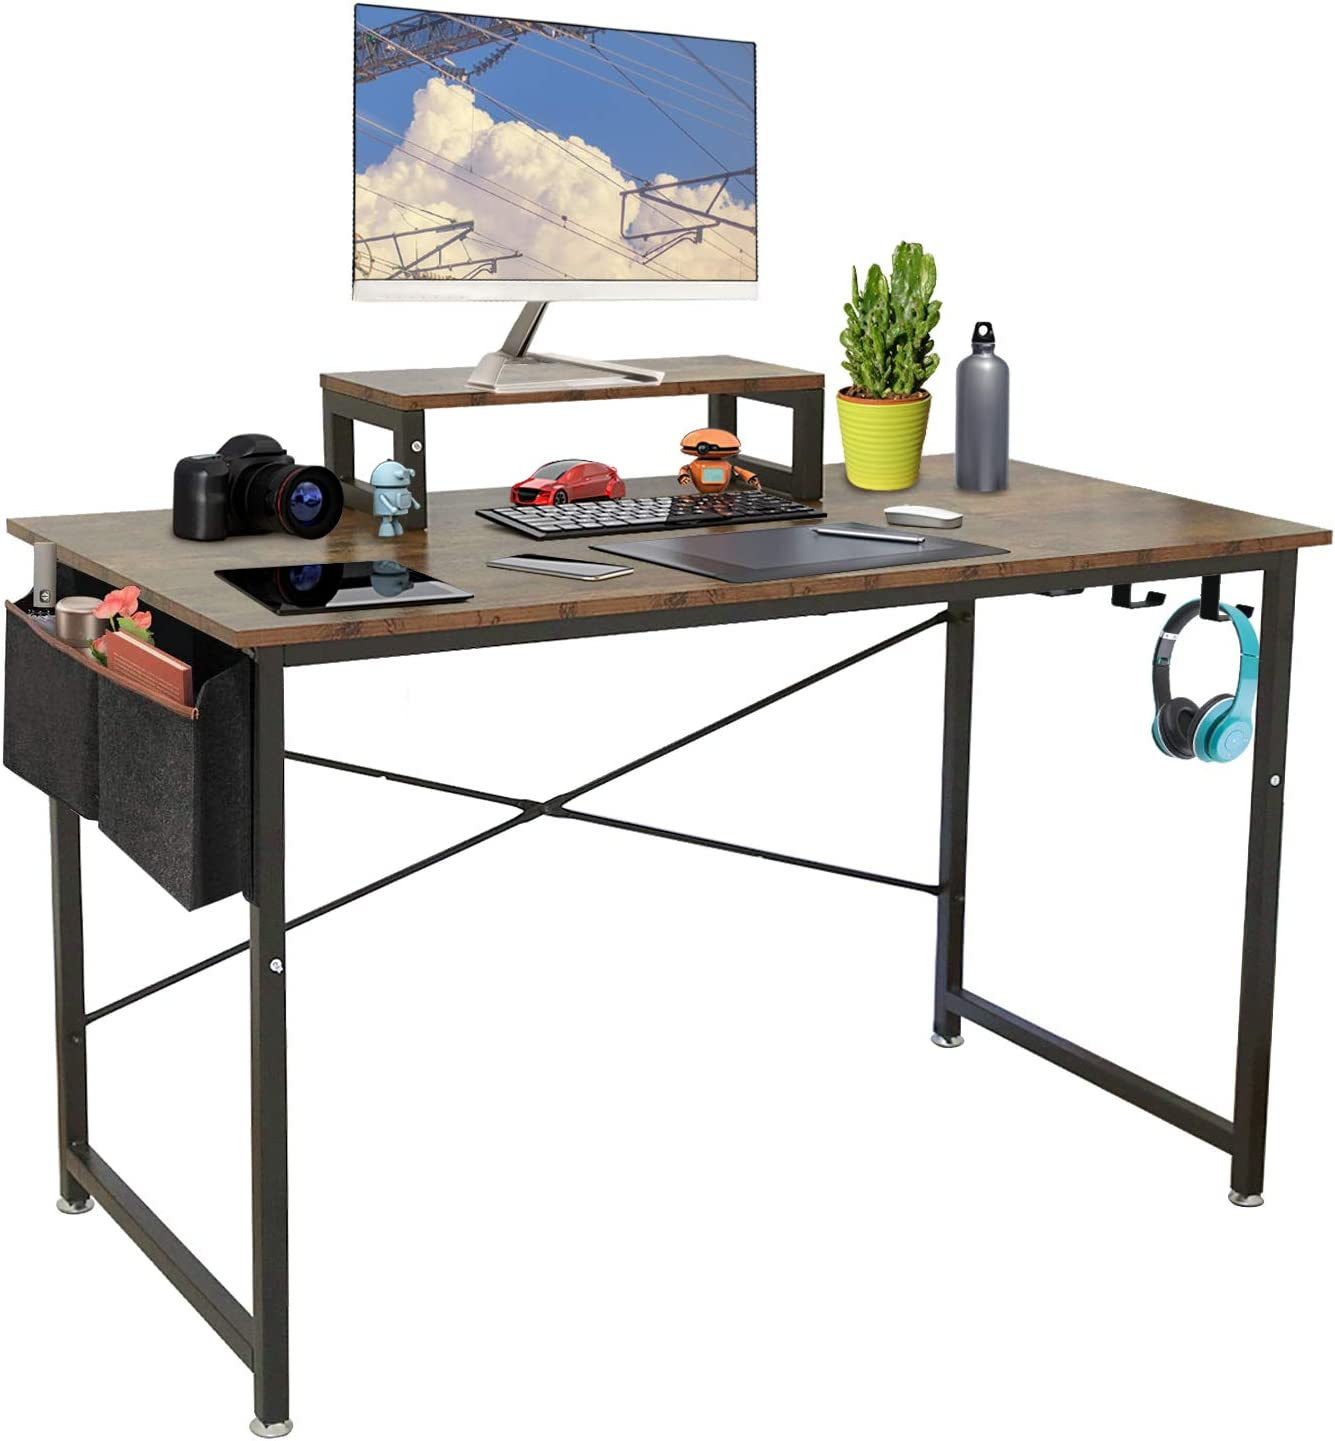 Computer Desk 39 inch Max 48% OFF Study Office-Modern Table Home for Writing Finally resale start